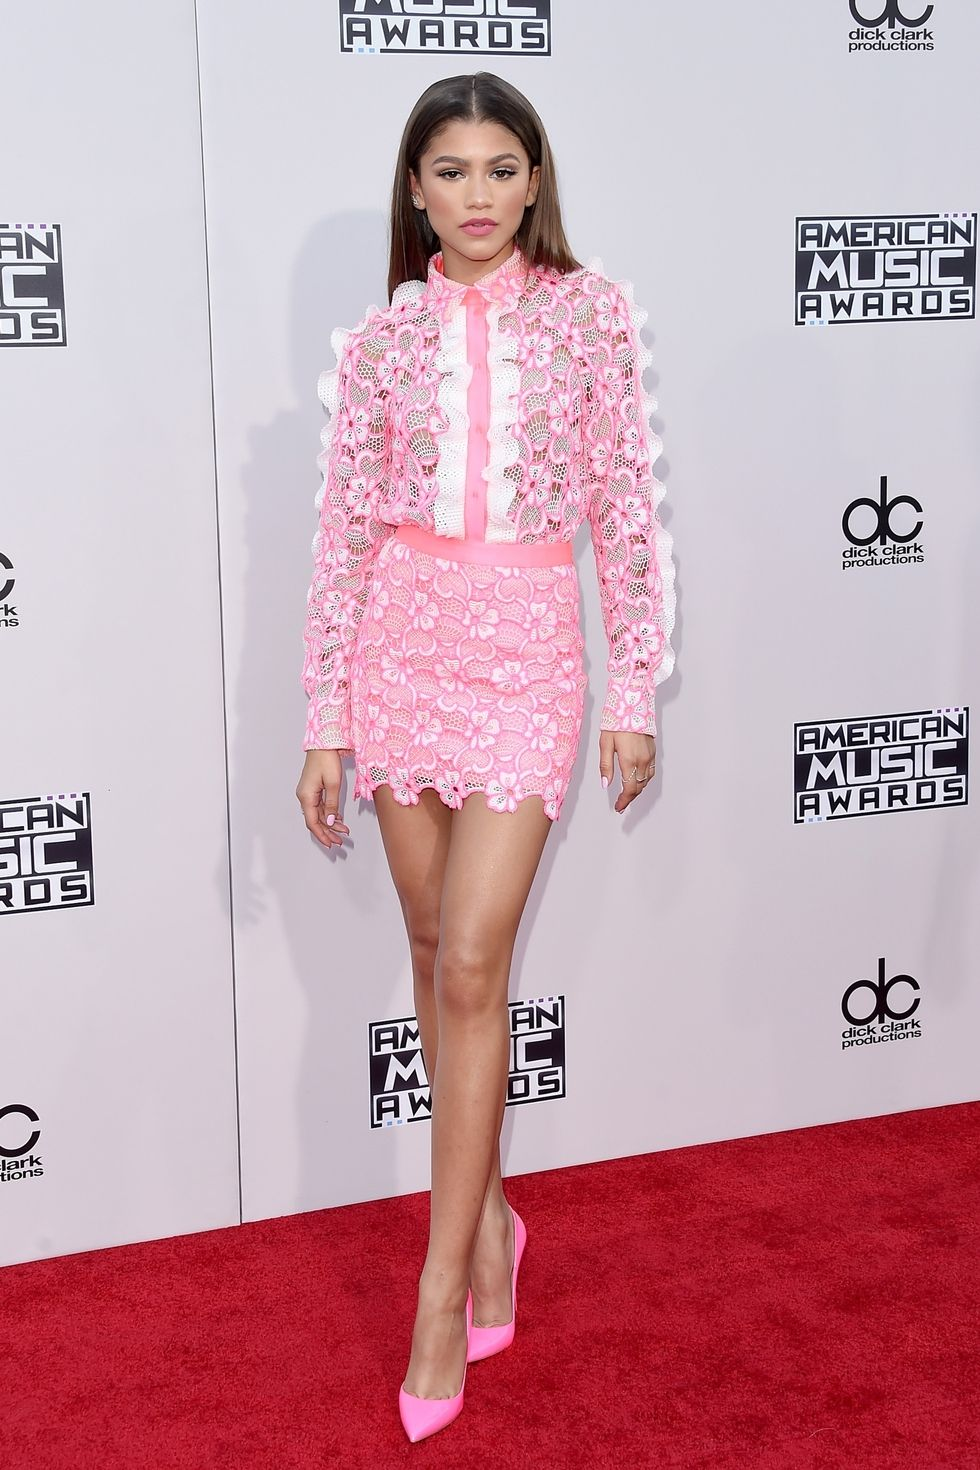 wearing-emanuel-ungaro-at-the-2015-american-music-awards_orig.jpg